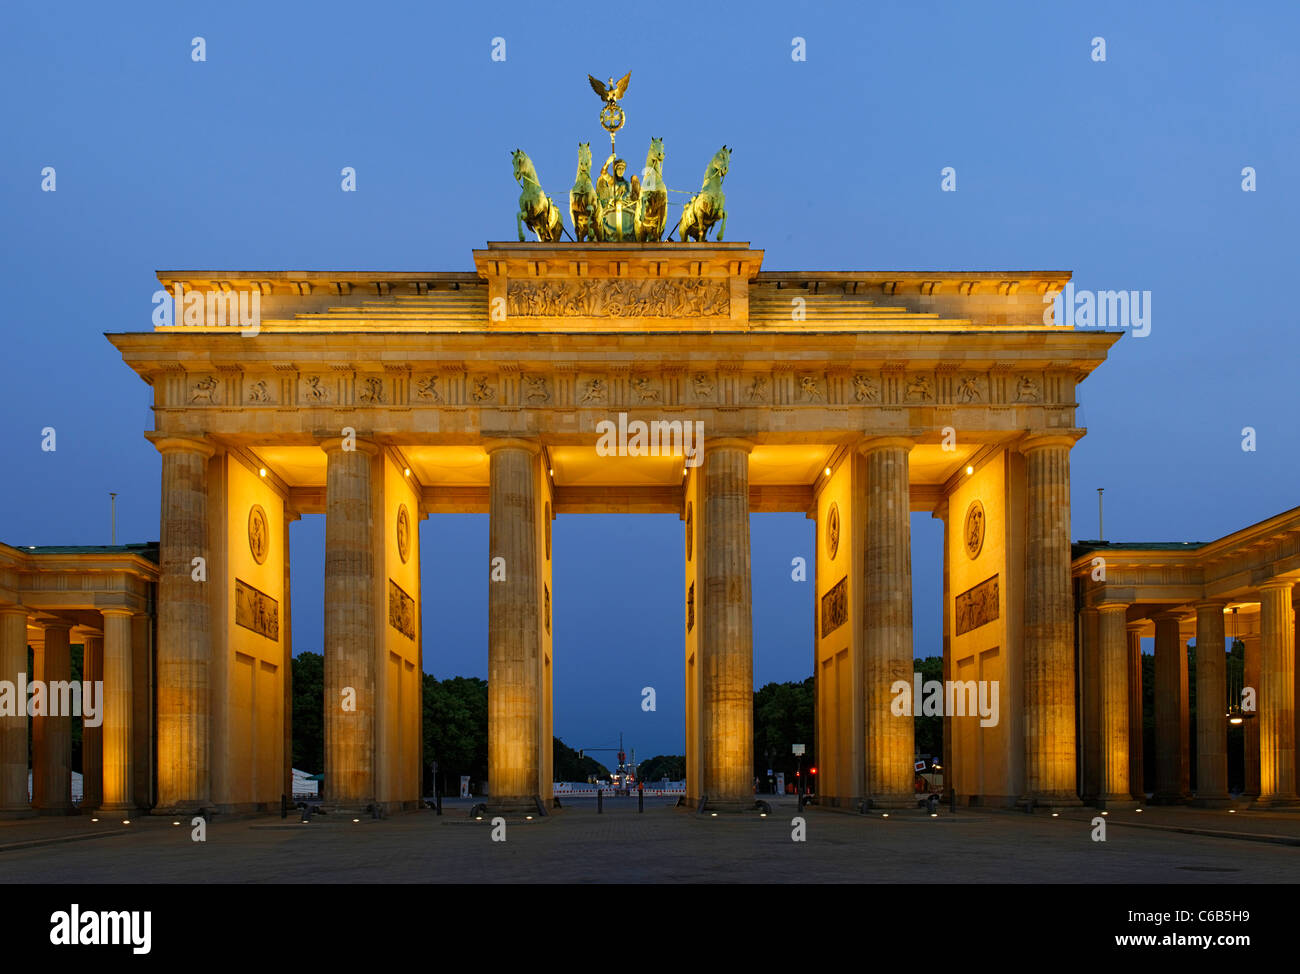 Brandenburg Gate, in the early morning twilight, Tiergarten, Mitte district, Berlin, Germany, Europe - Stock Image